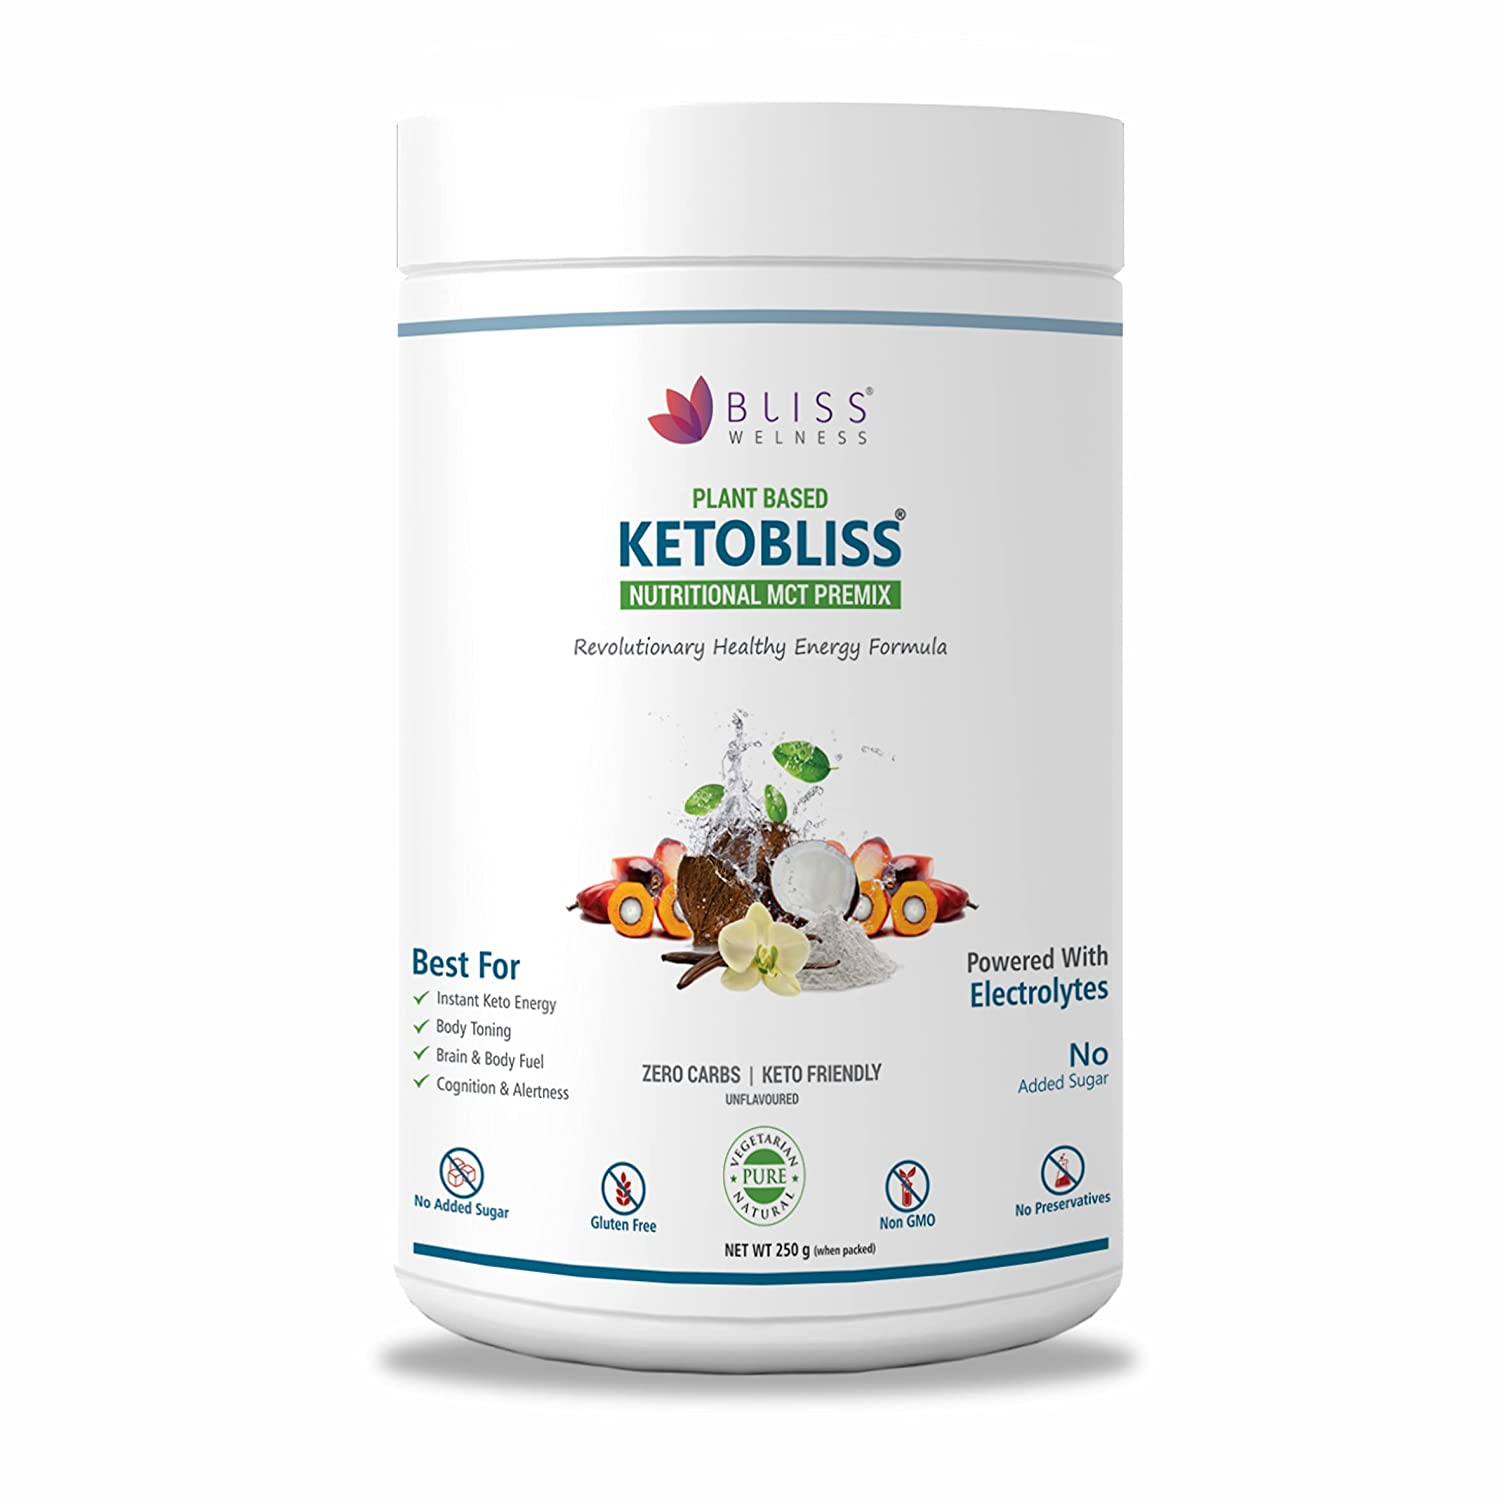 Bliss Welness Keto MCT Oil Powder Zero Carb Clean Energy for Ketosis Weight Management - Unflavored